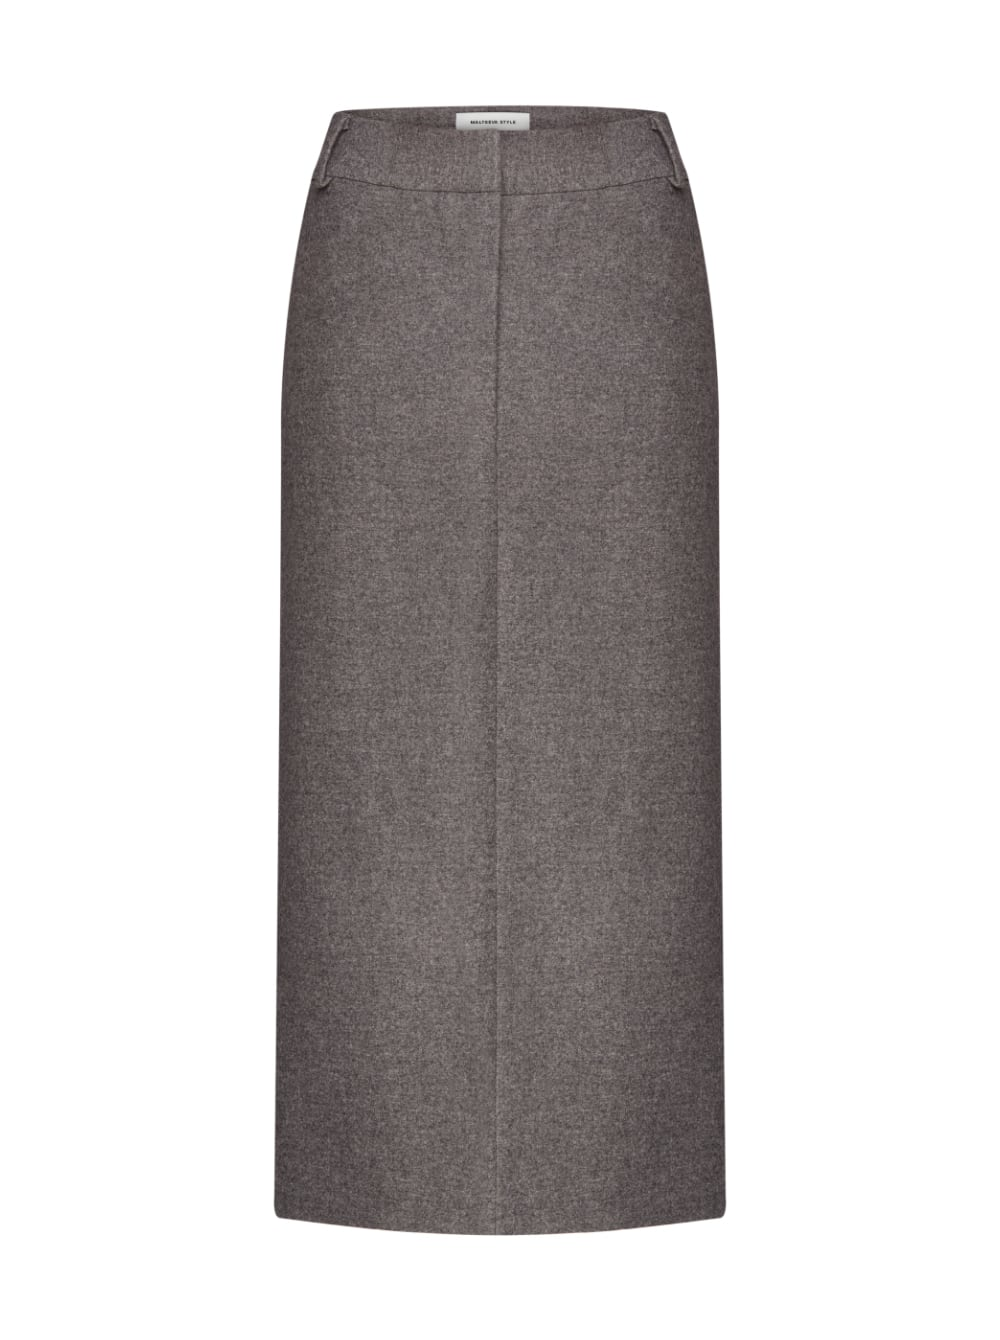 картинка Girlfriend Skirt Grey - Maltseva Style